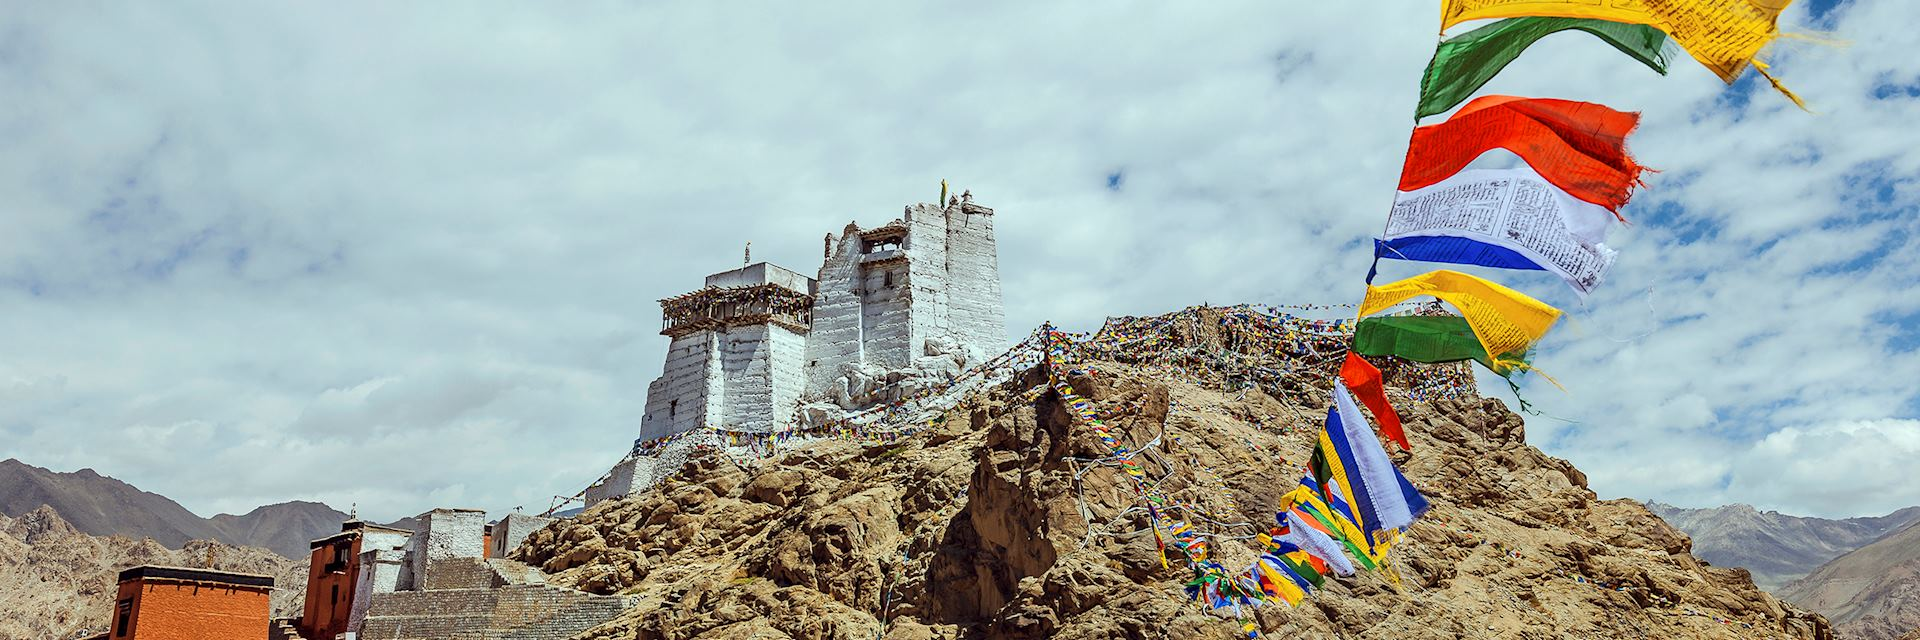 Prayer flags and Leh Palace in Ladakh, northern India